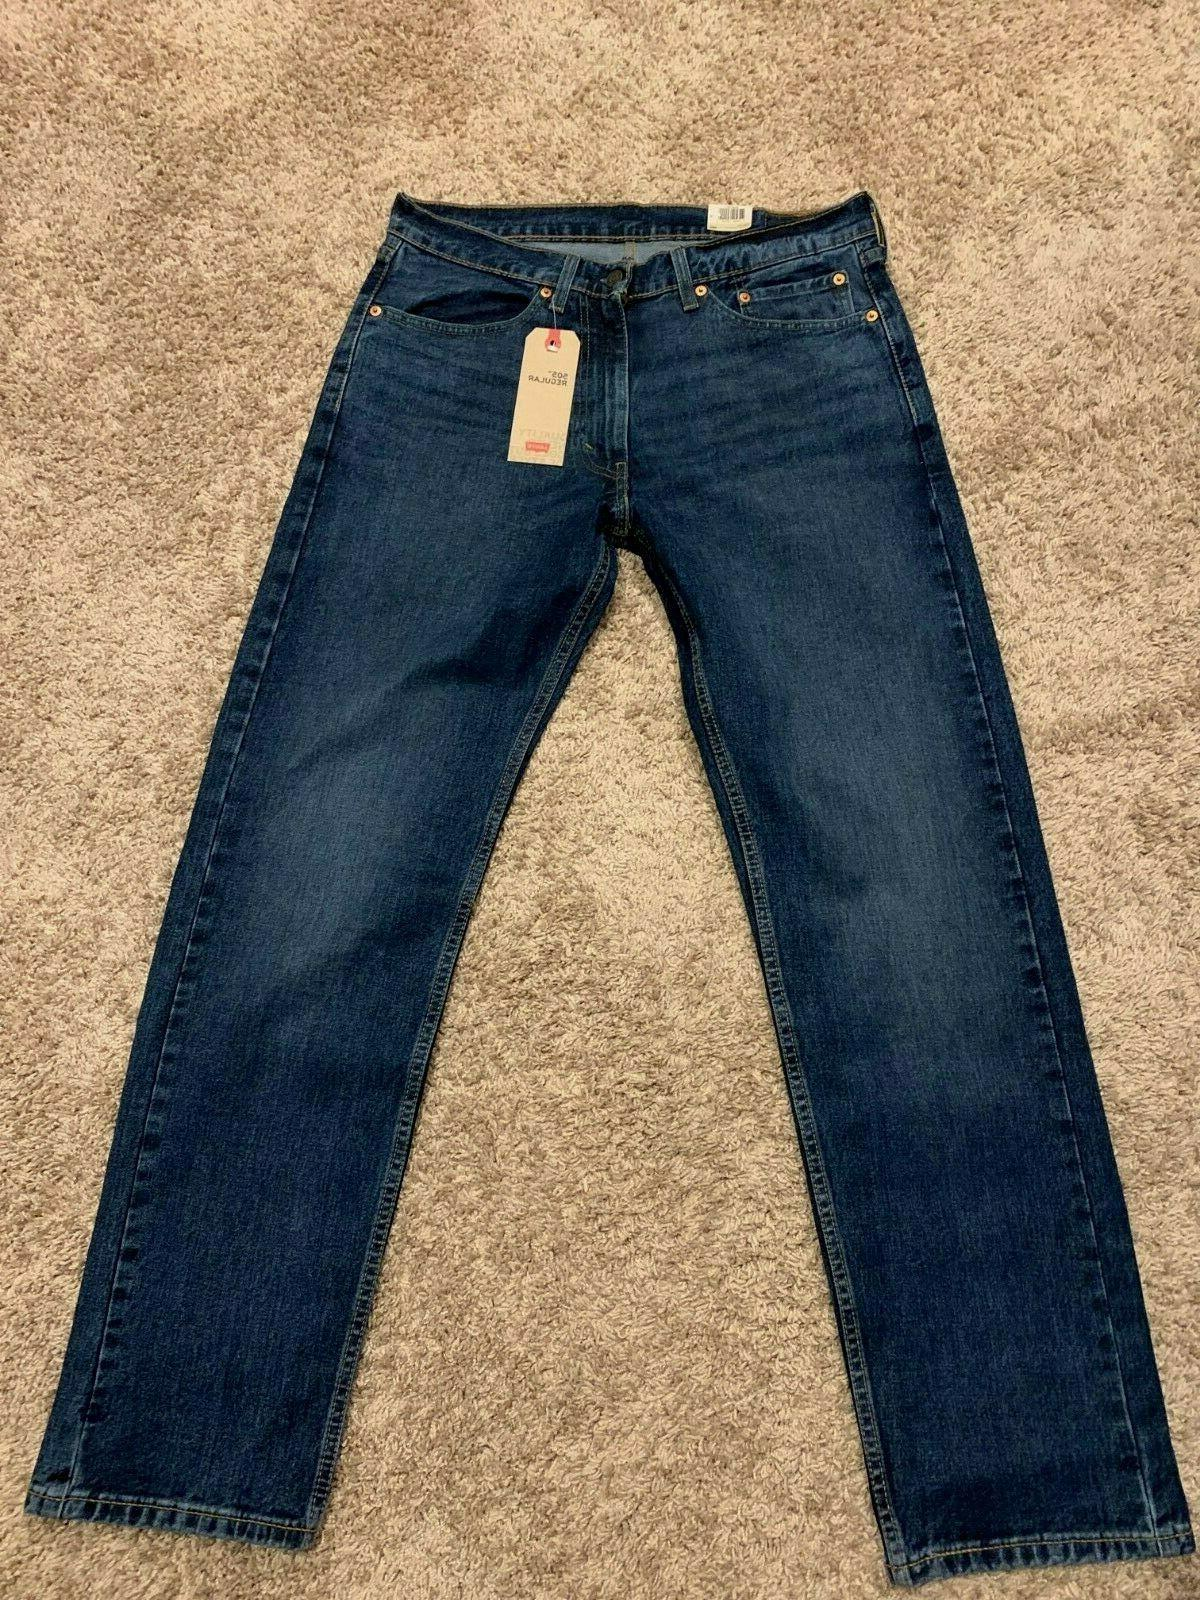 Levi's Men's Regular Fit Straight Leg NWT